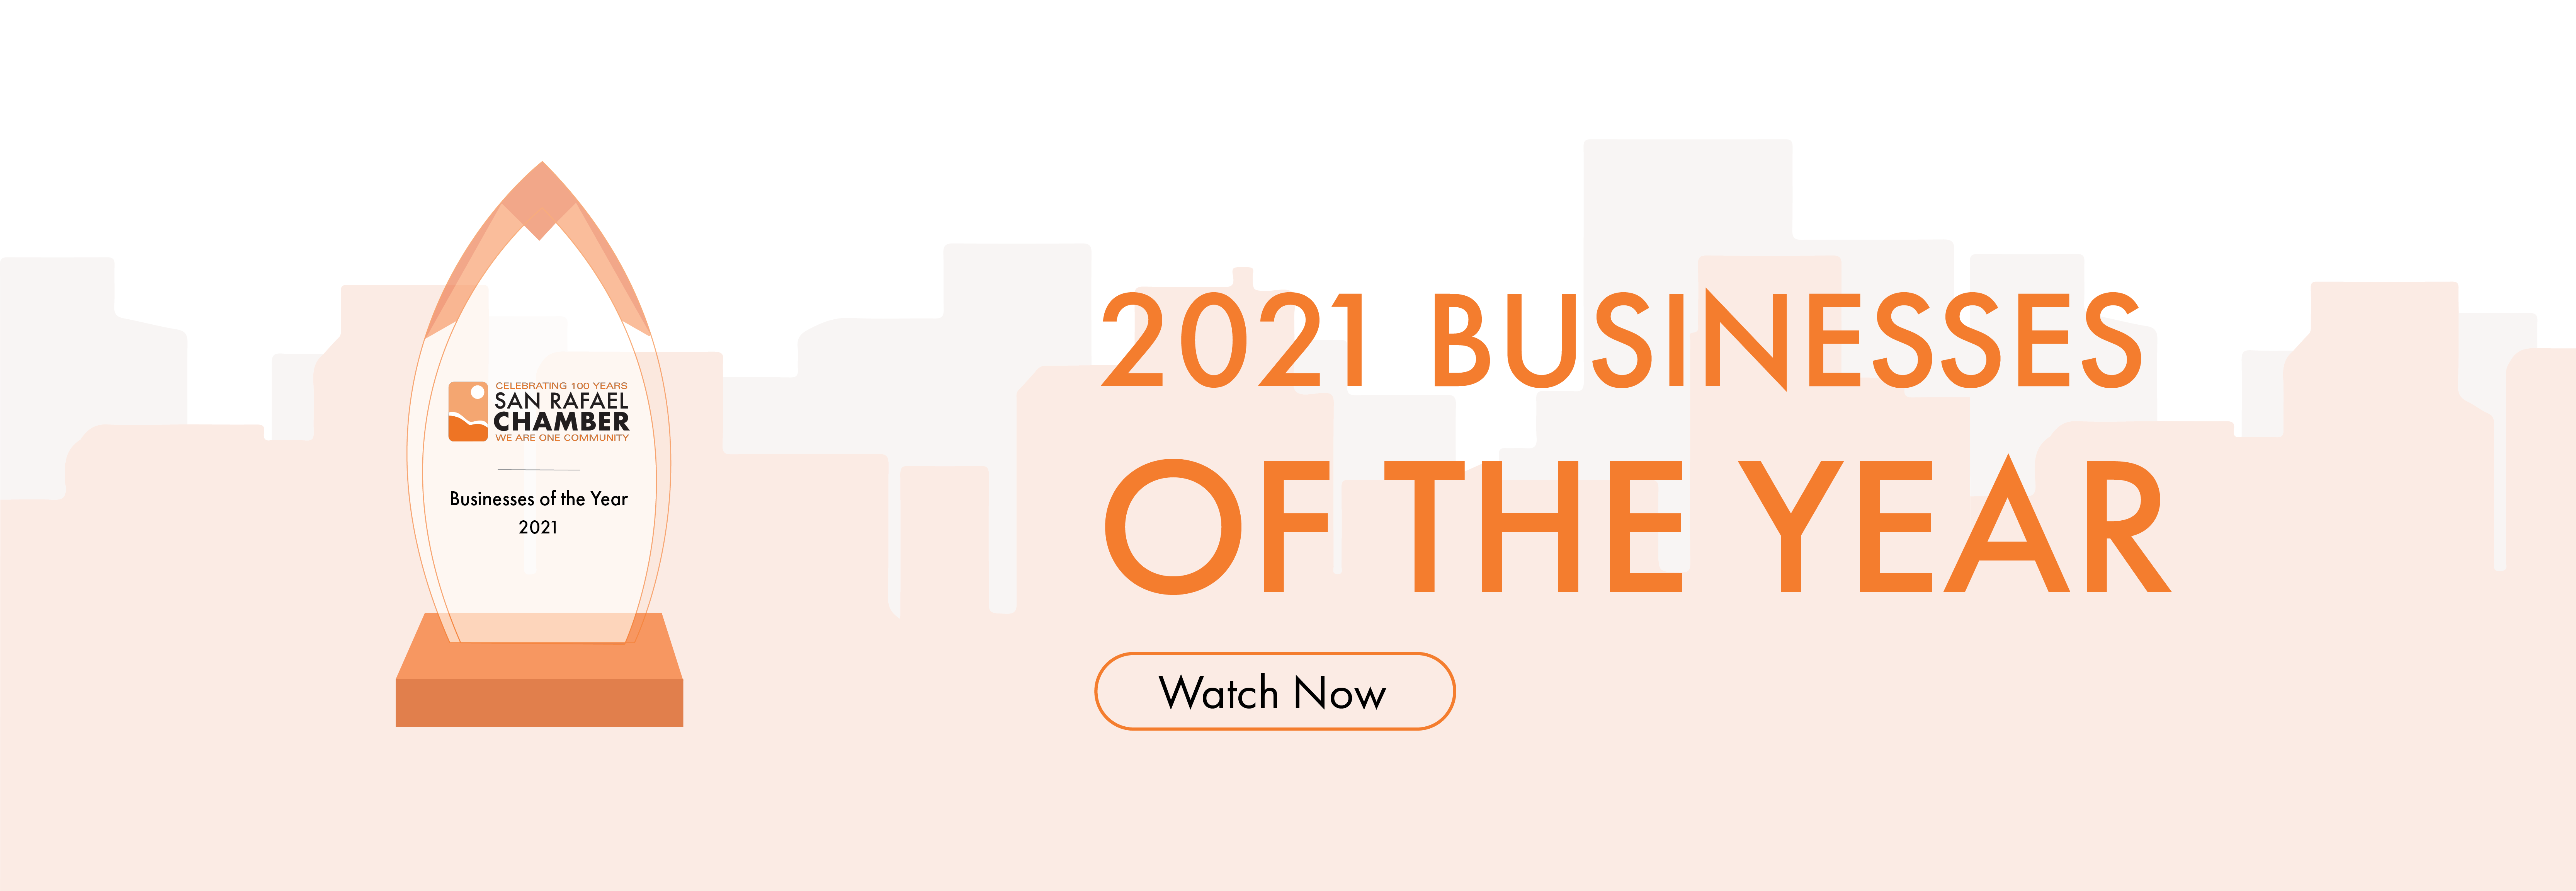 2021-Business-of-the-Year-Homepage-Slider-01.png